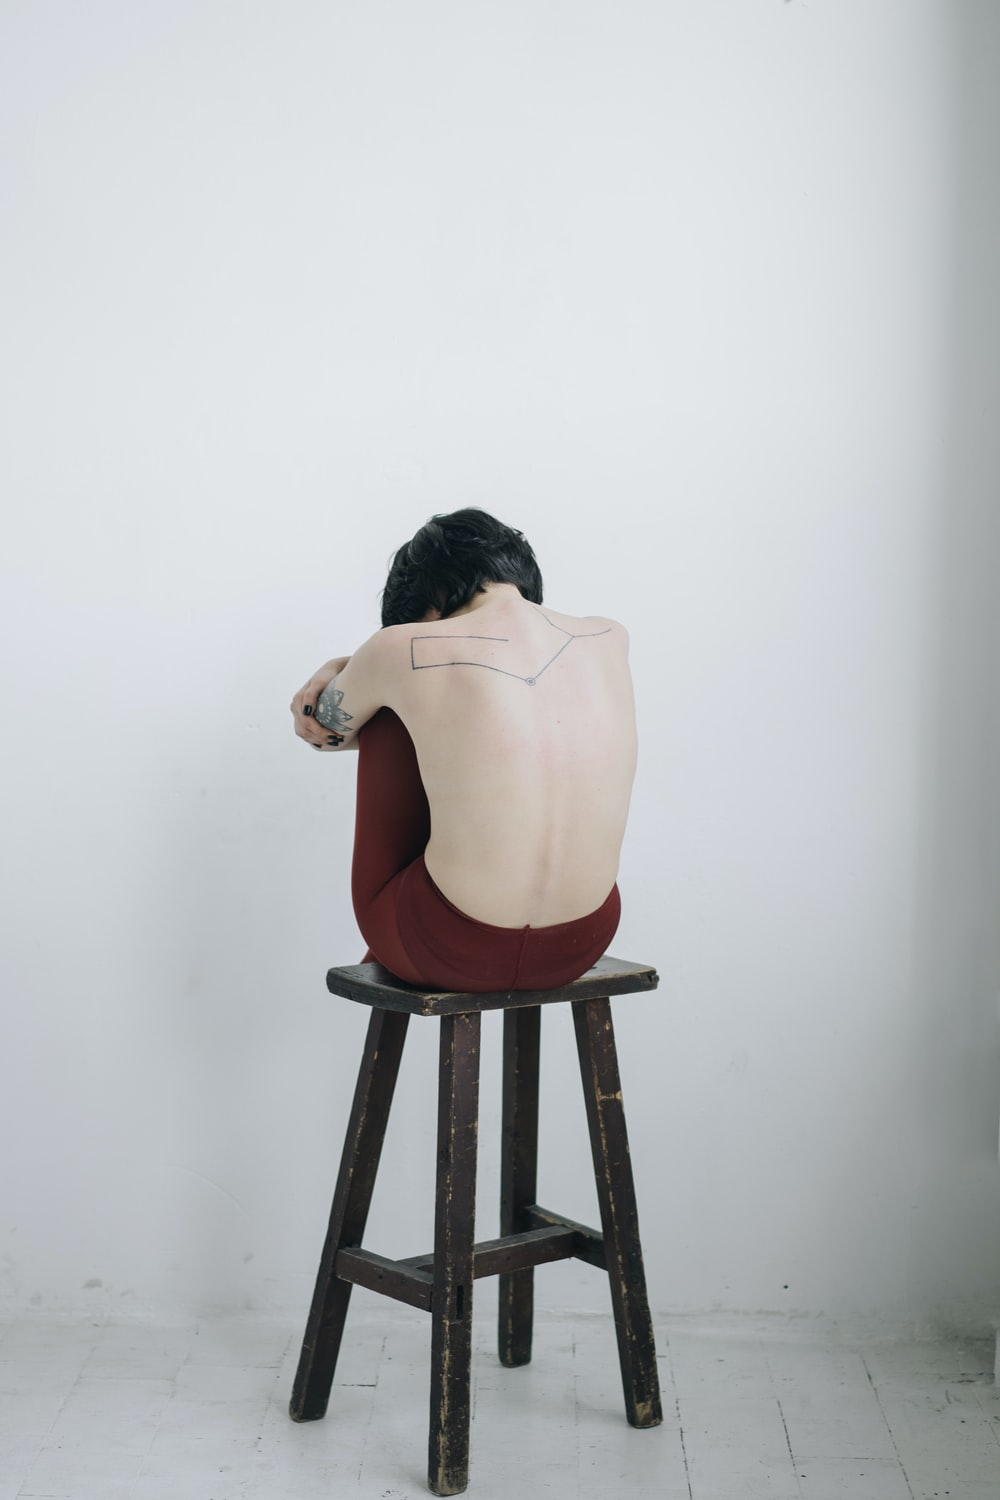 topless woman sitting on chair near white wall